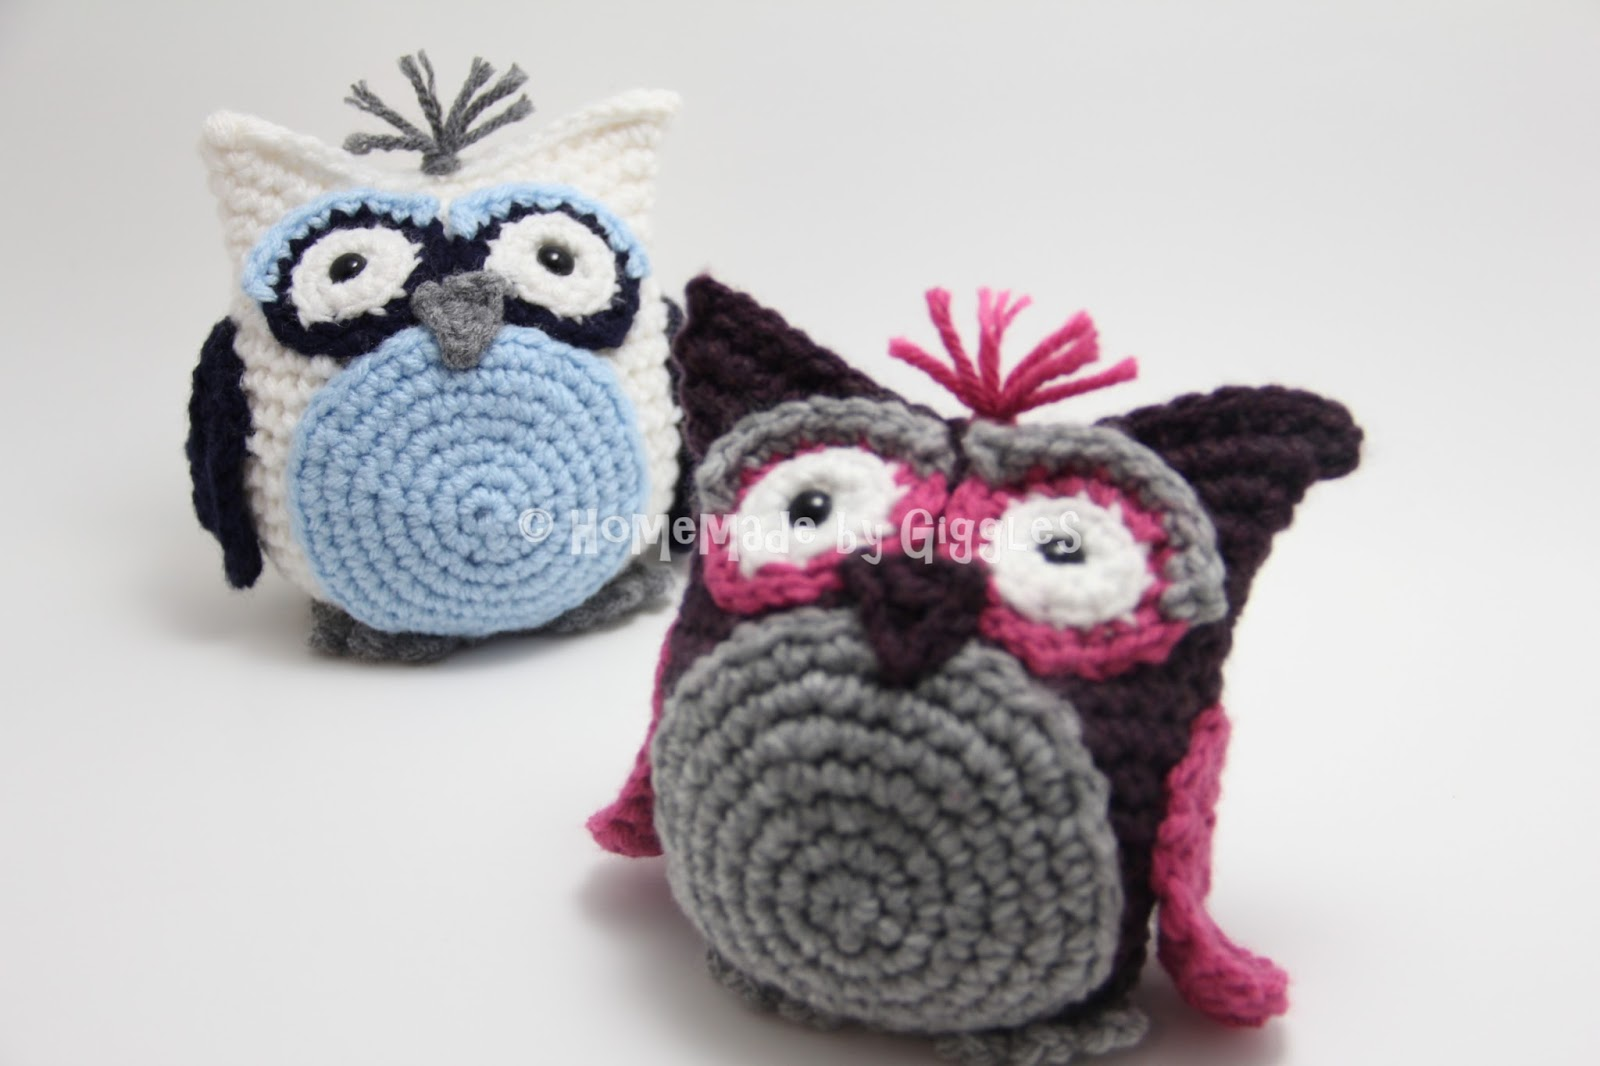 Crochet Beach Bag Pattern : Homemade by Giggles: Bean Bag Owl - FREE Crochet Pattern!